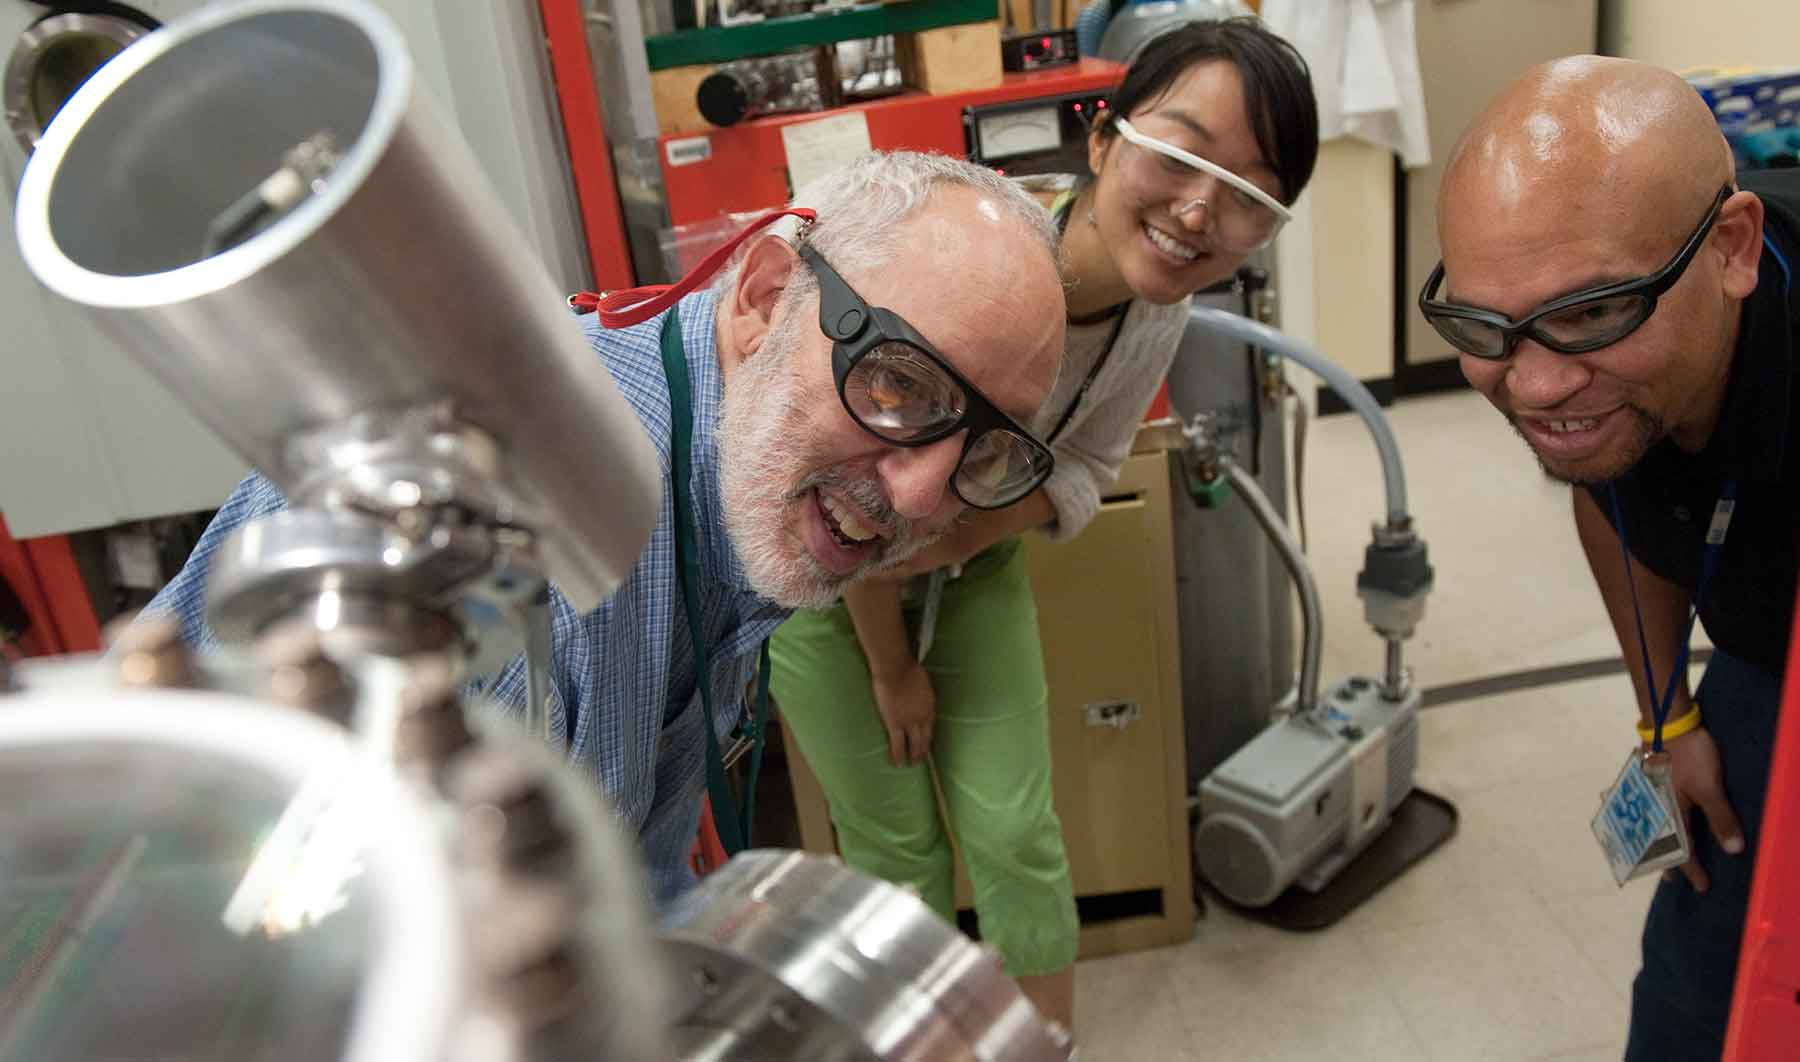 Two men and a woman in goggles look at a piece of lab equipment.